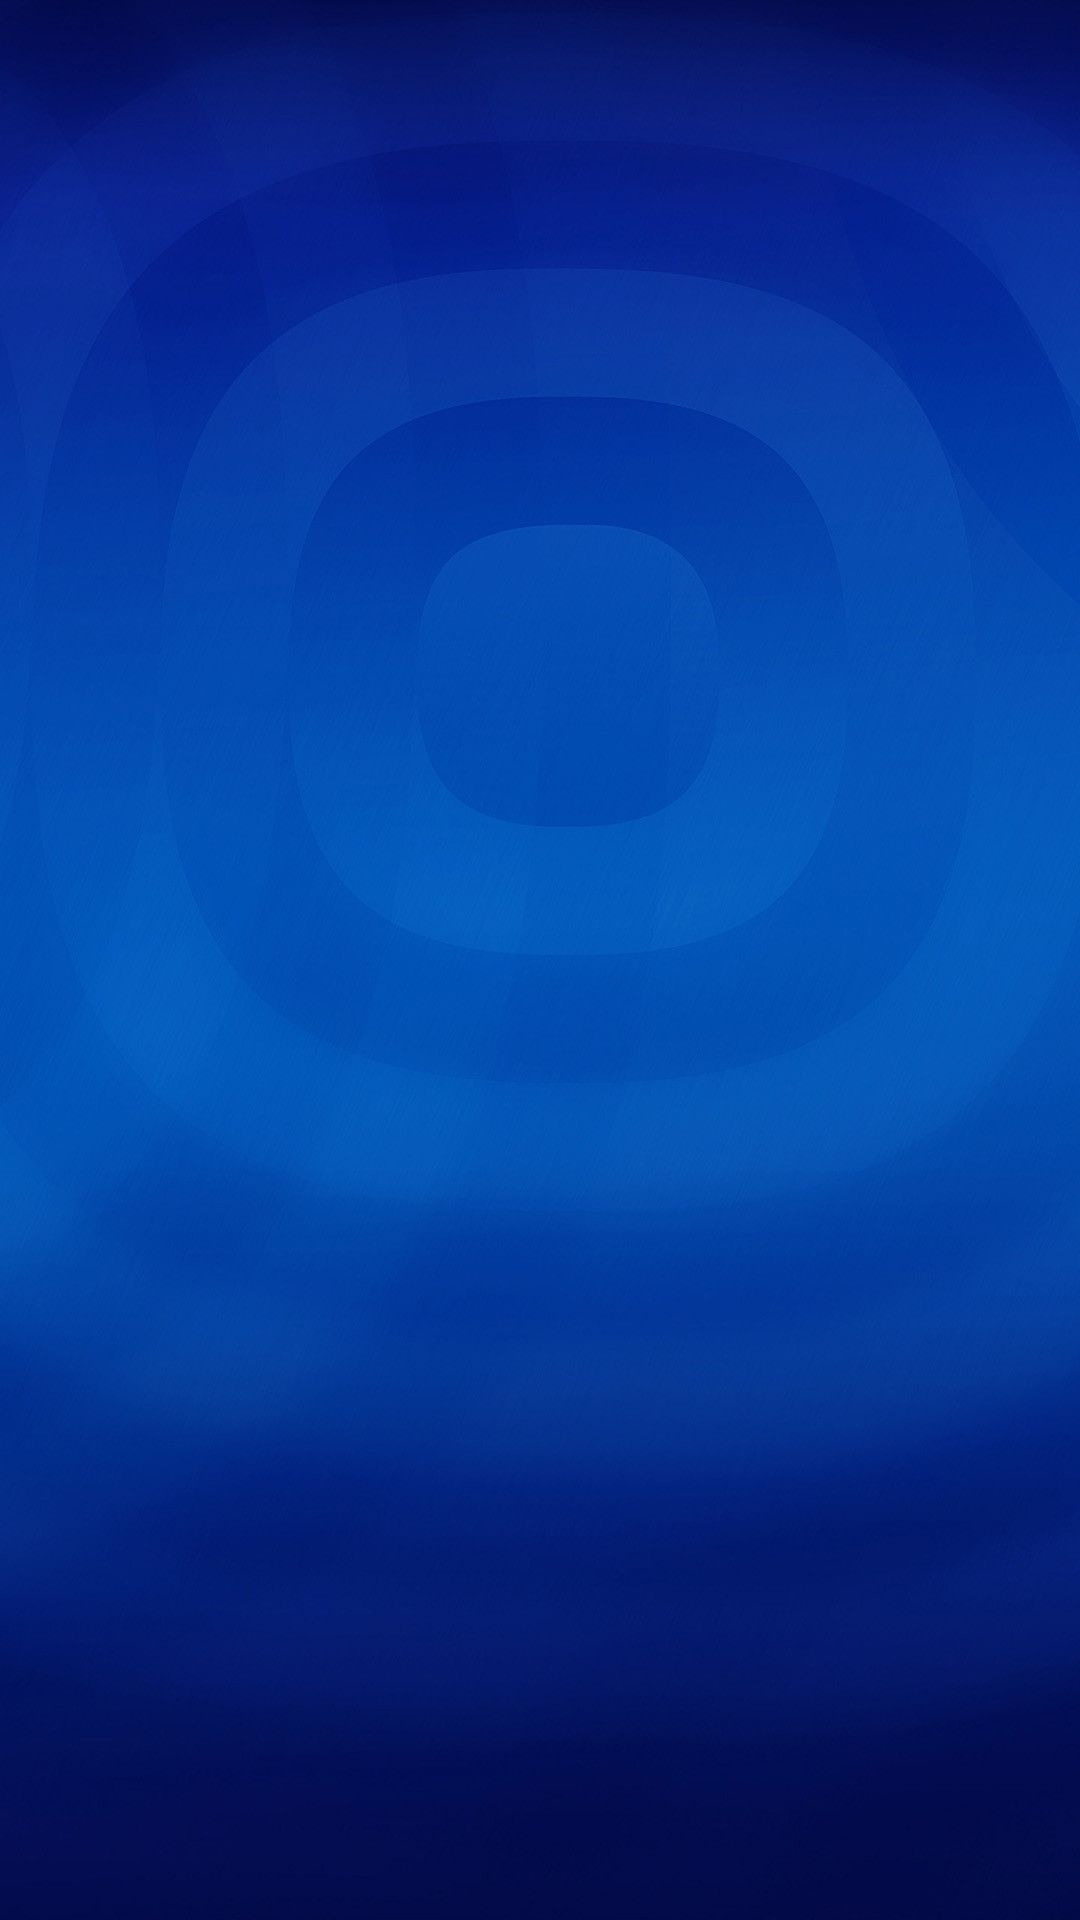 1080x1920 Simple, Blue, Abstract, Android, Wallpaper, Desktop Images, High  Resolution, Apple, 1080×1920 Wallpaper HD